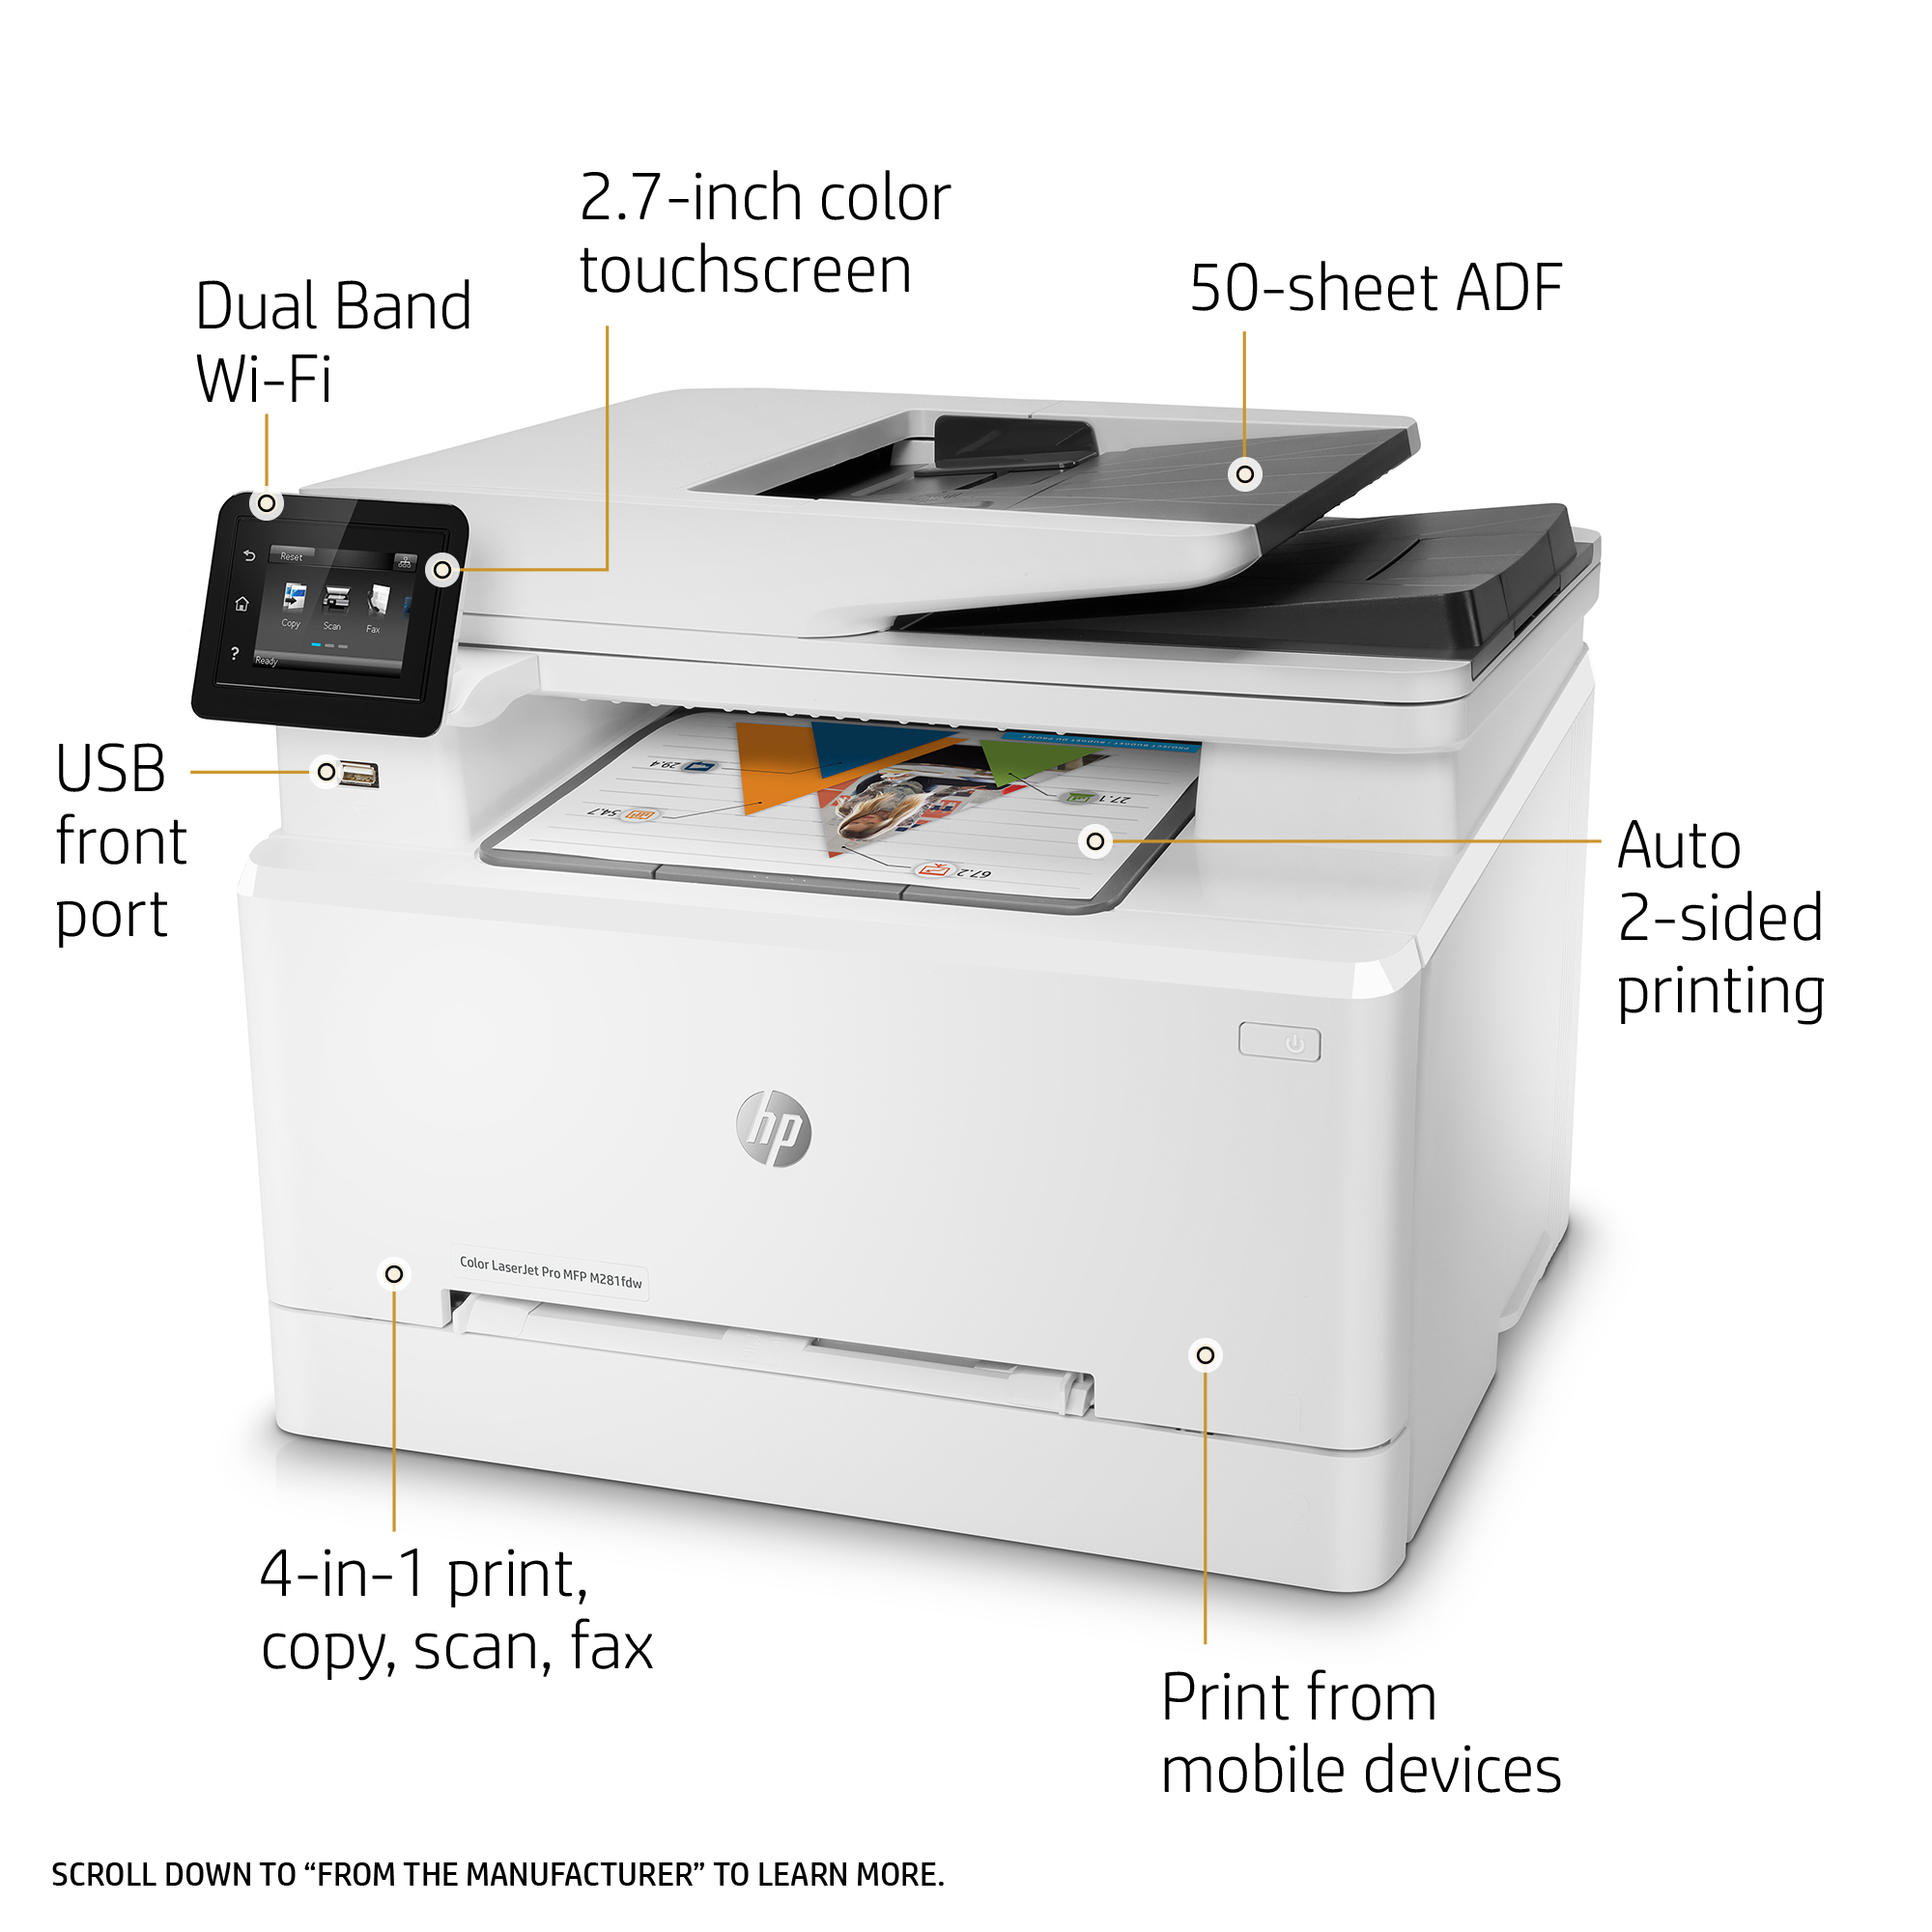 HP LaserJet Pro M281fdw Wireless Color Multifunction Laser Printer, 21 ppm,  600x600 dpi, 250 Sheet Input Tray - Print, Copy, Scan, Fax